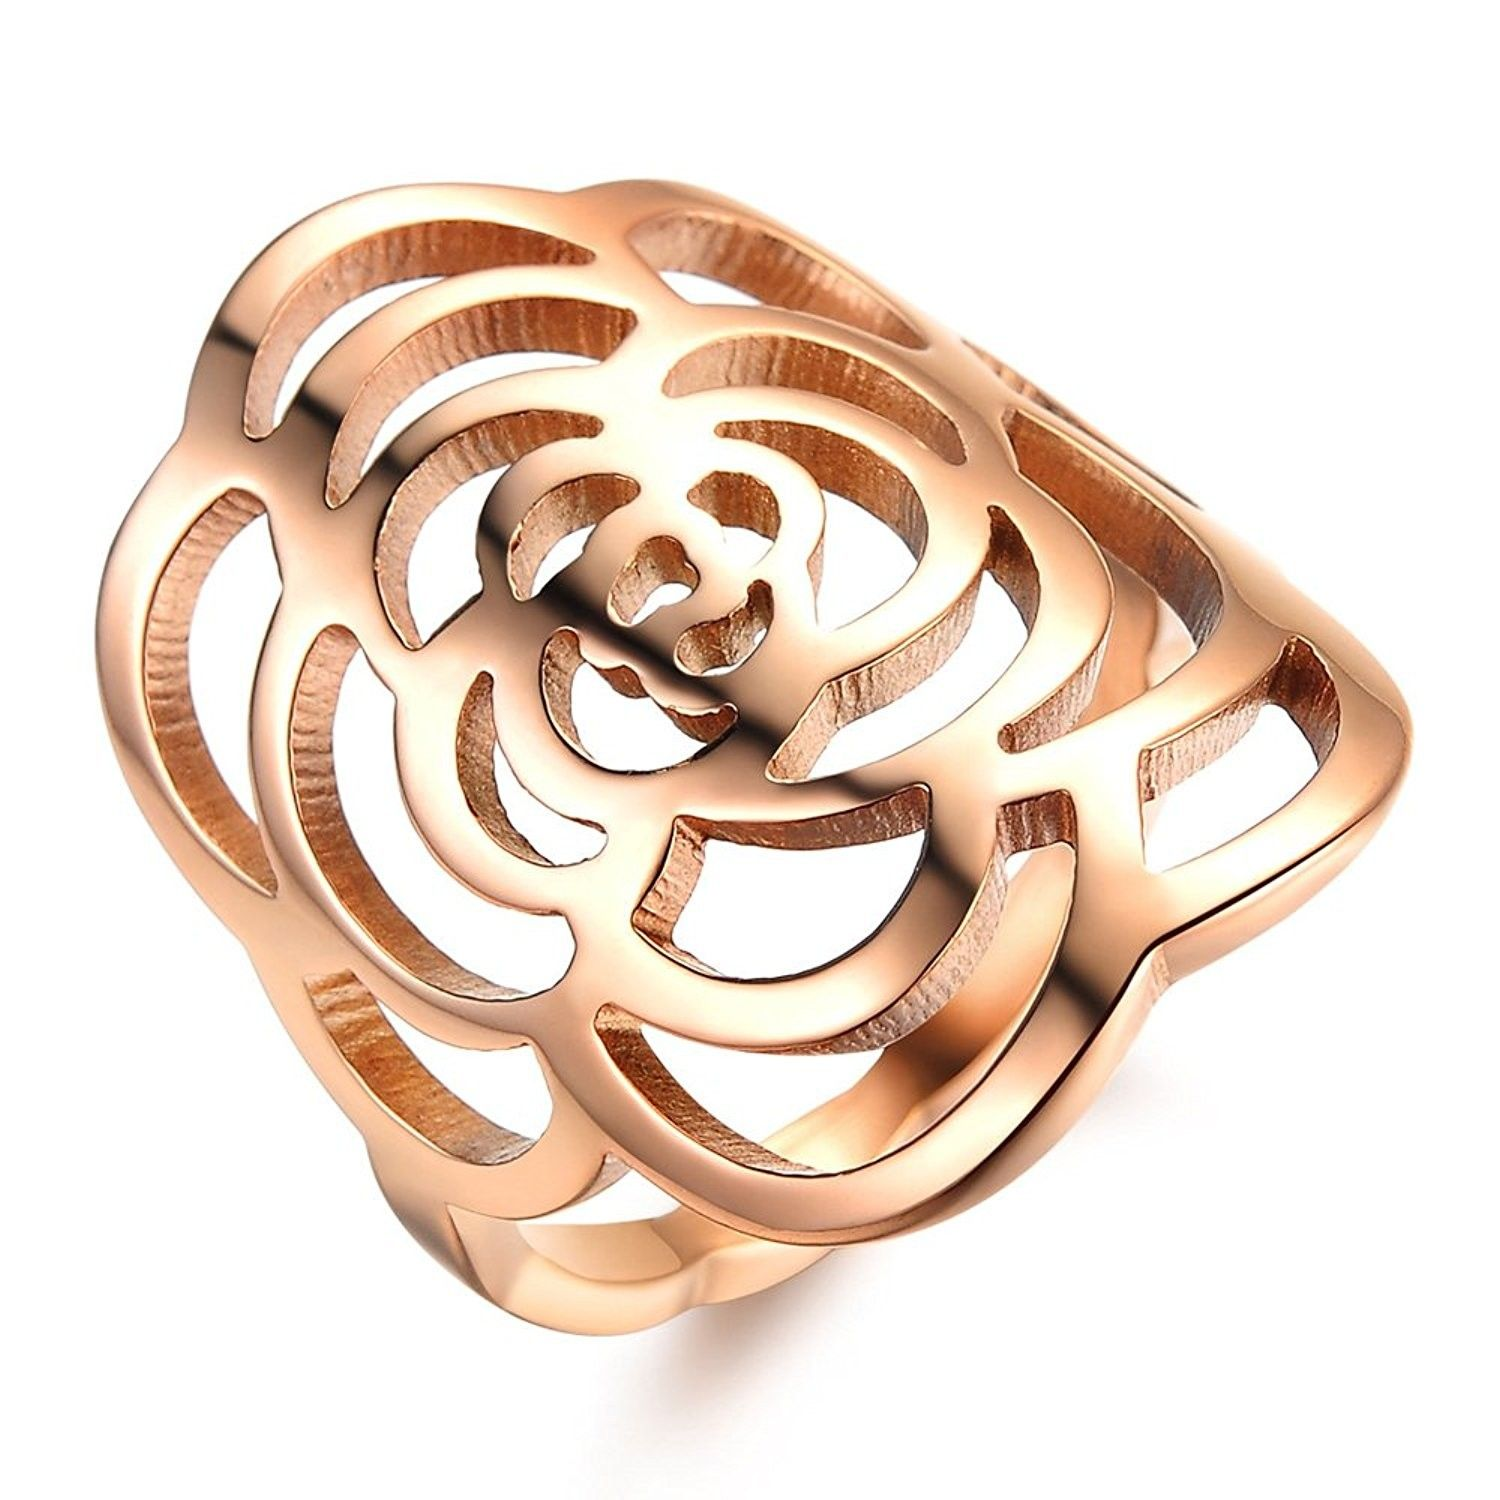 Women rings rose gold plated stainless steel finger band wedding